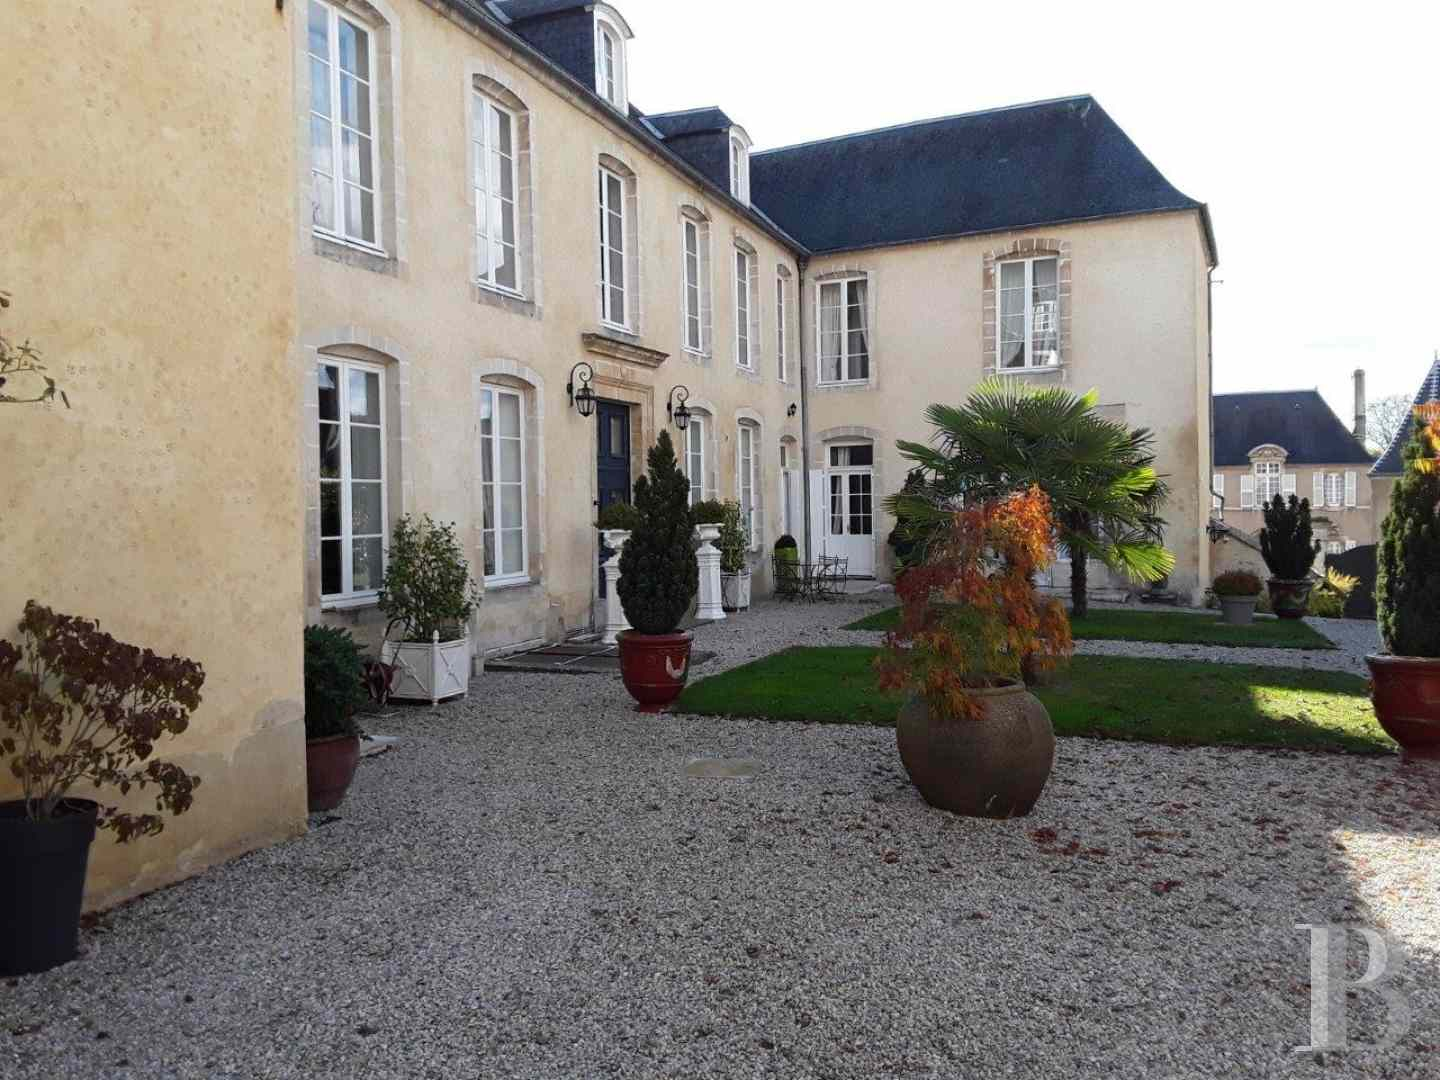 mansion houses for sale France lower normandy mansion houses - 4 zoom